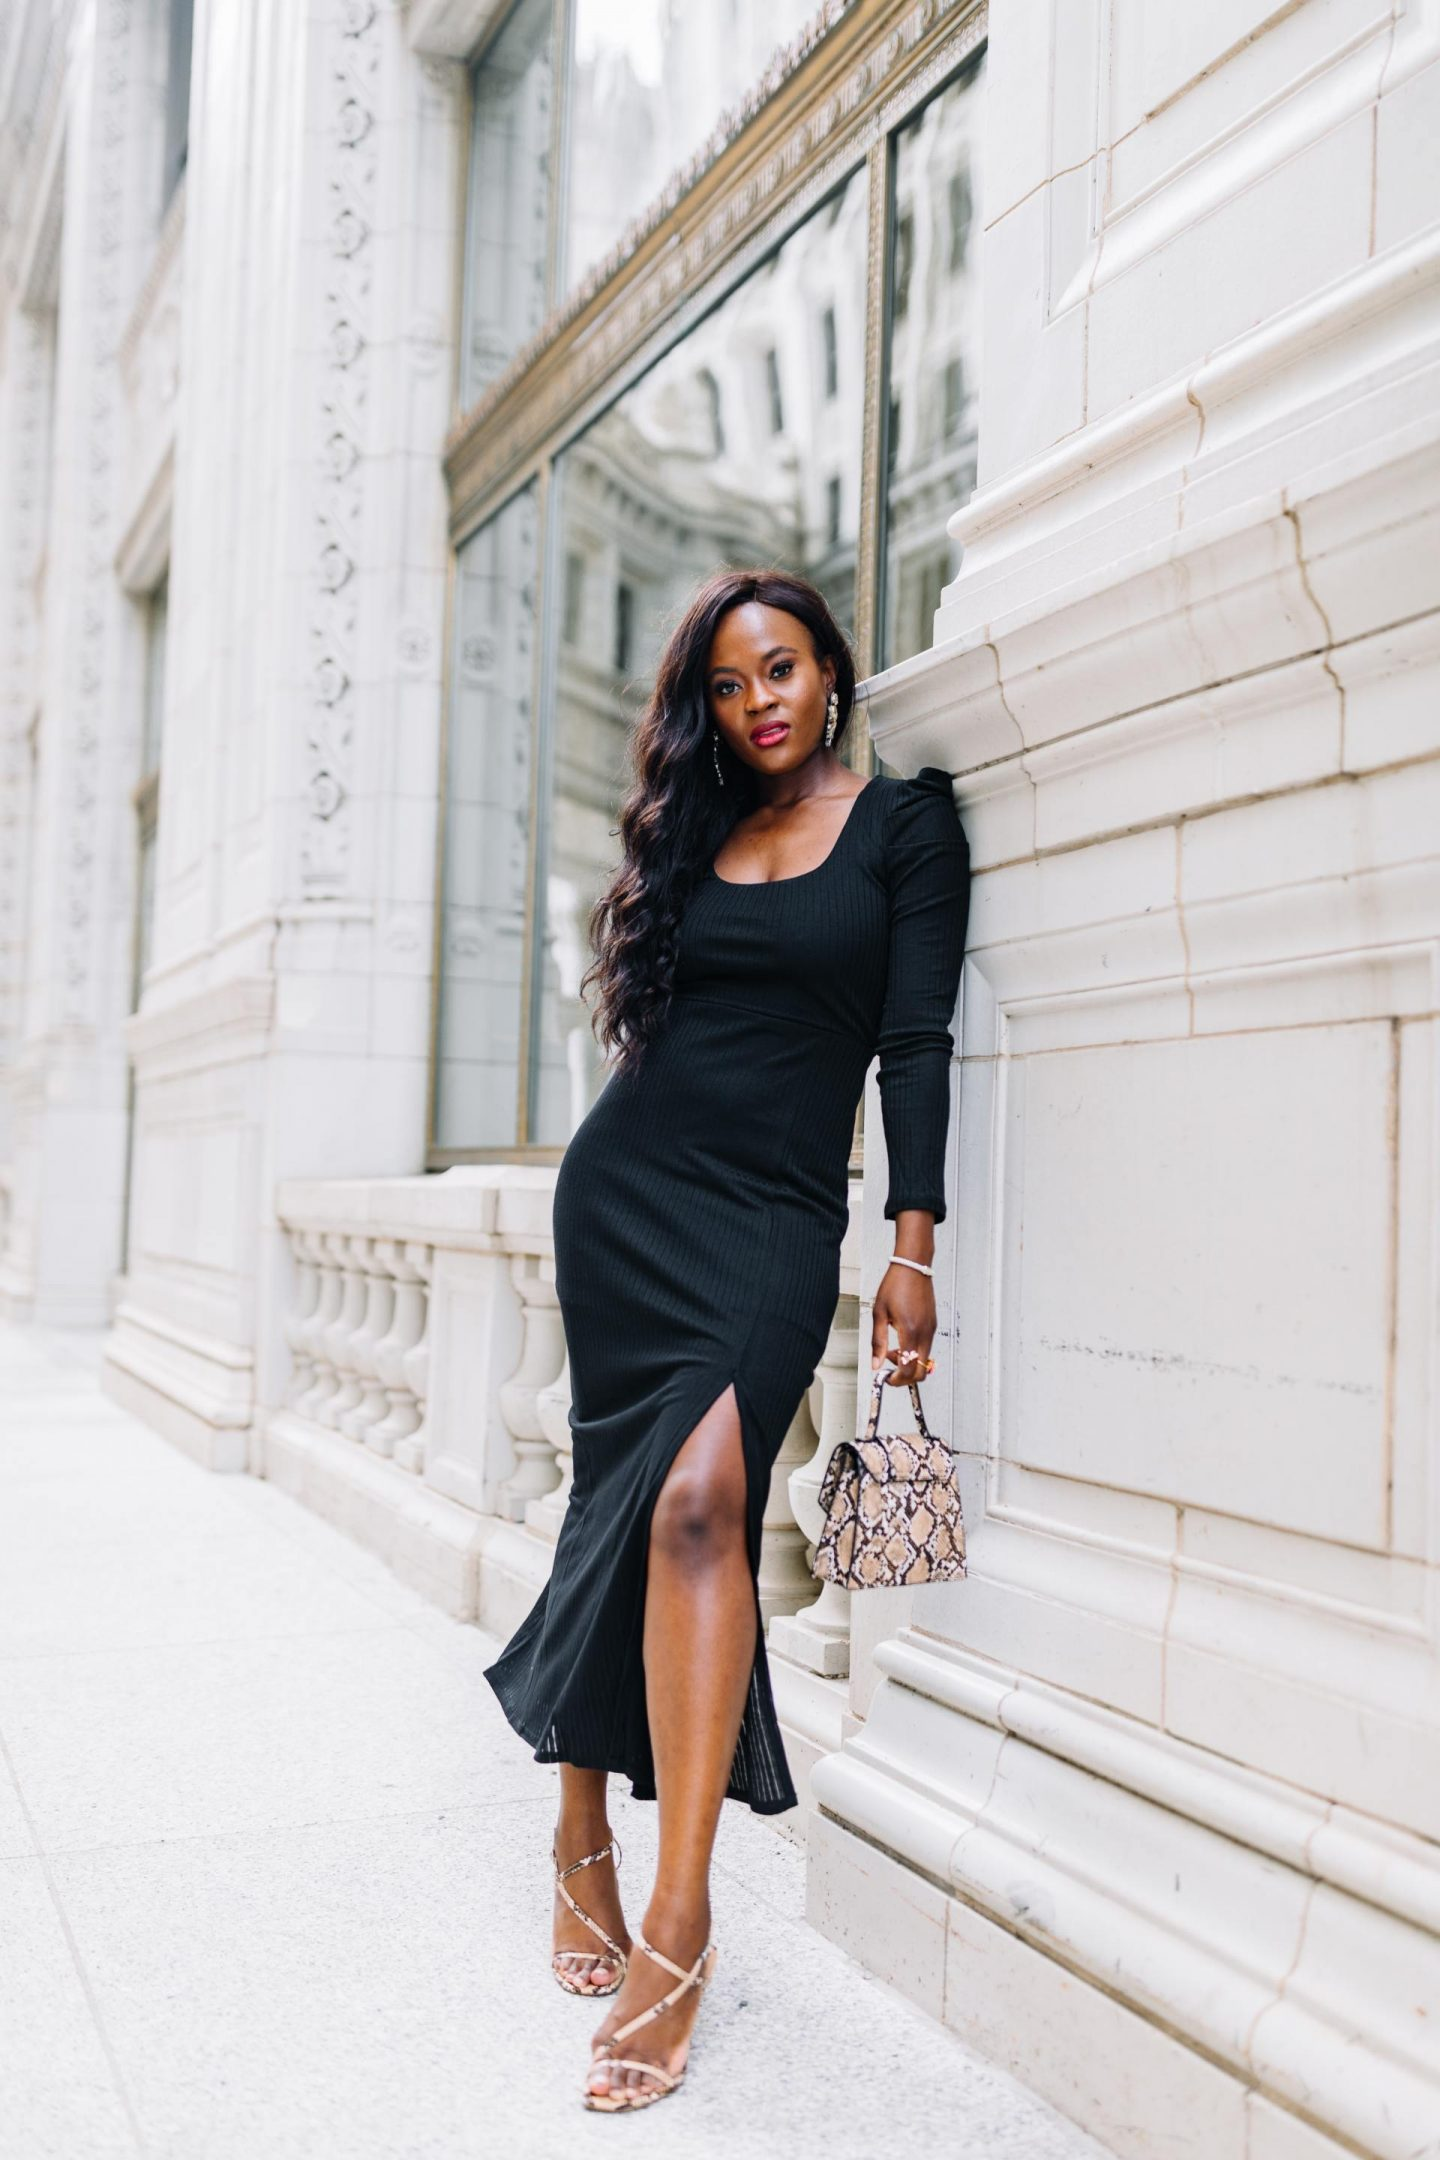 Style tips on how to look luxe on a budget